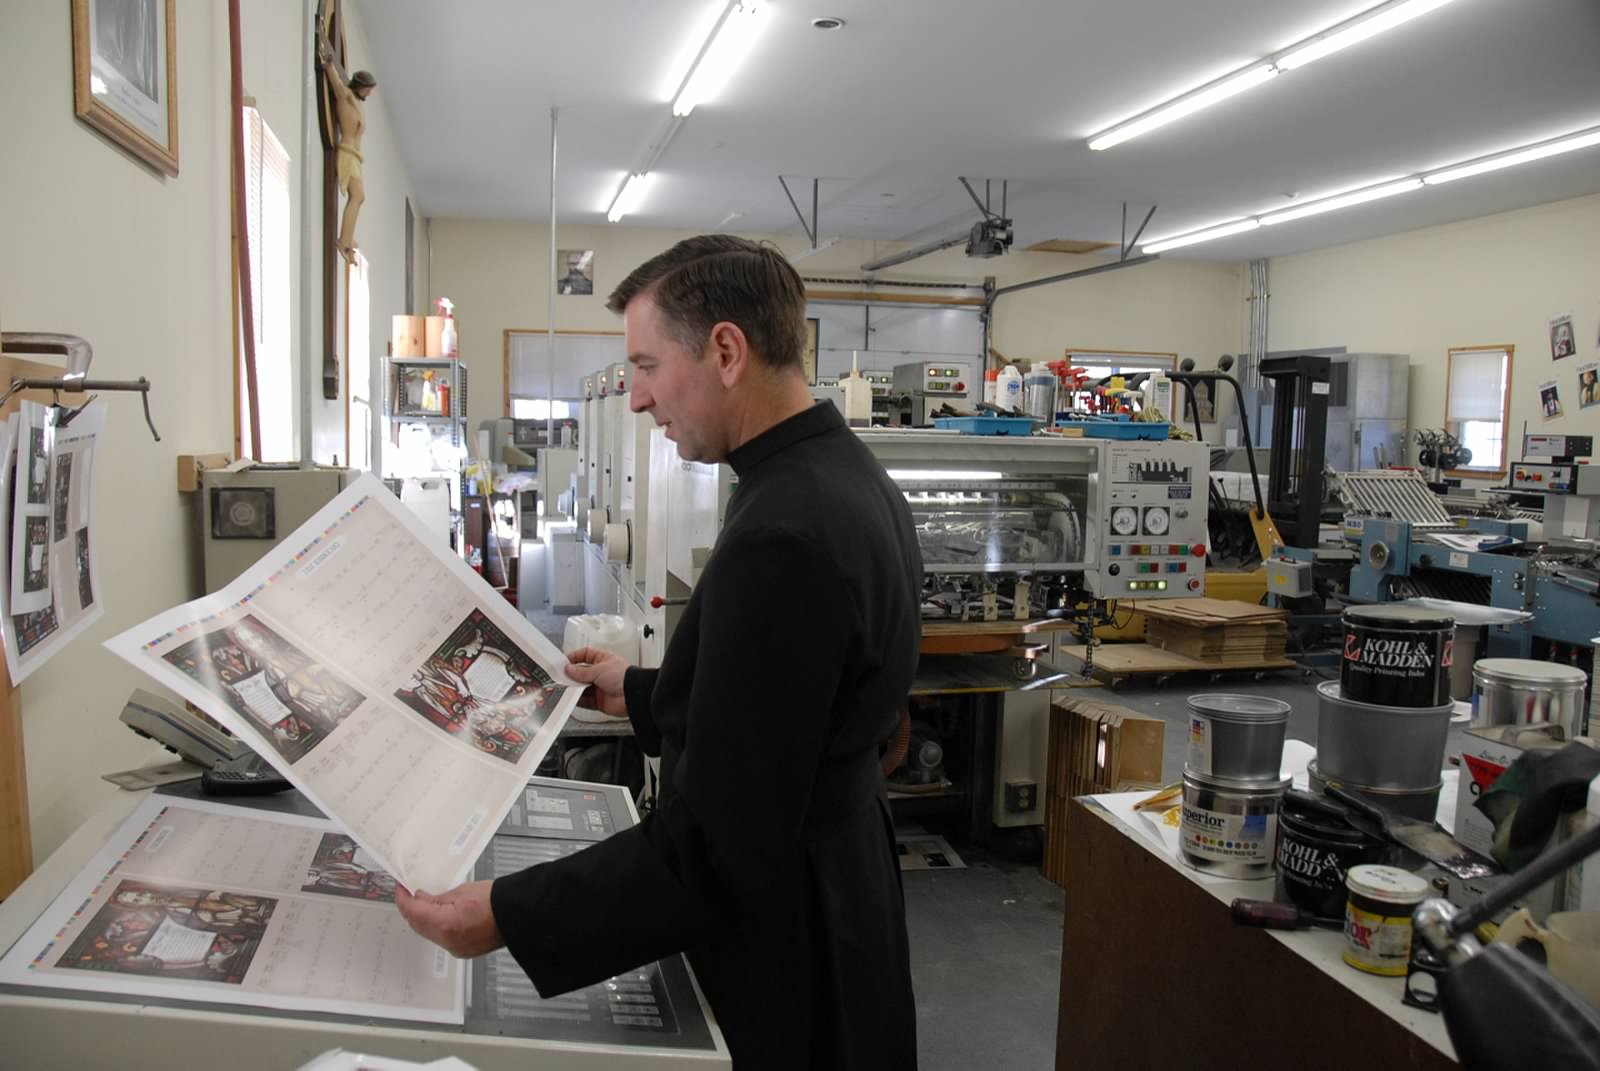 A Brother in the monastery printshop.